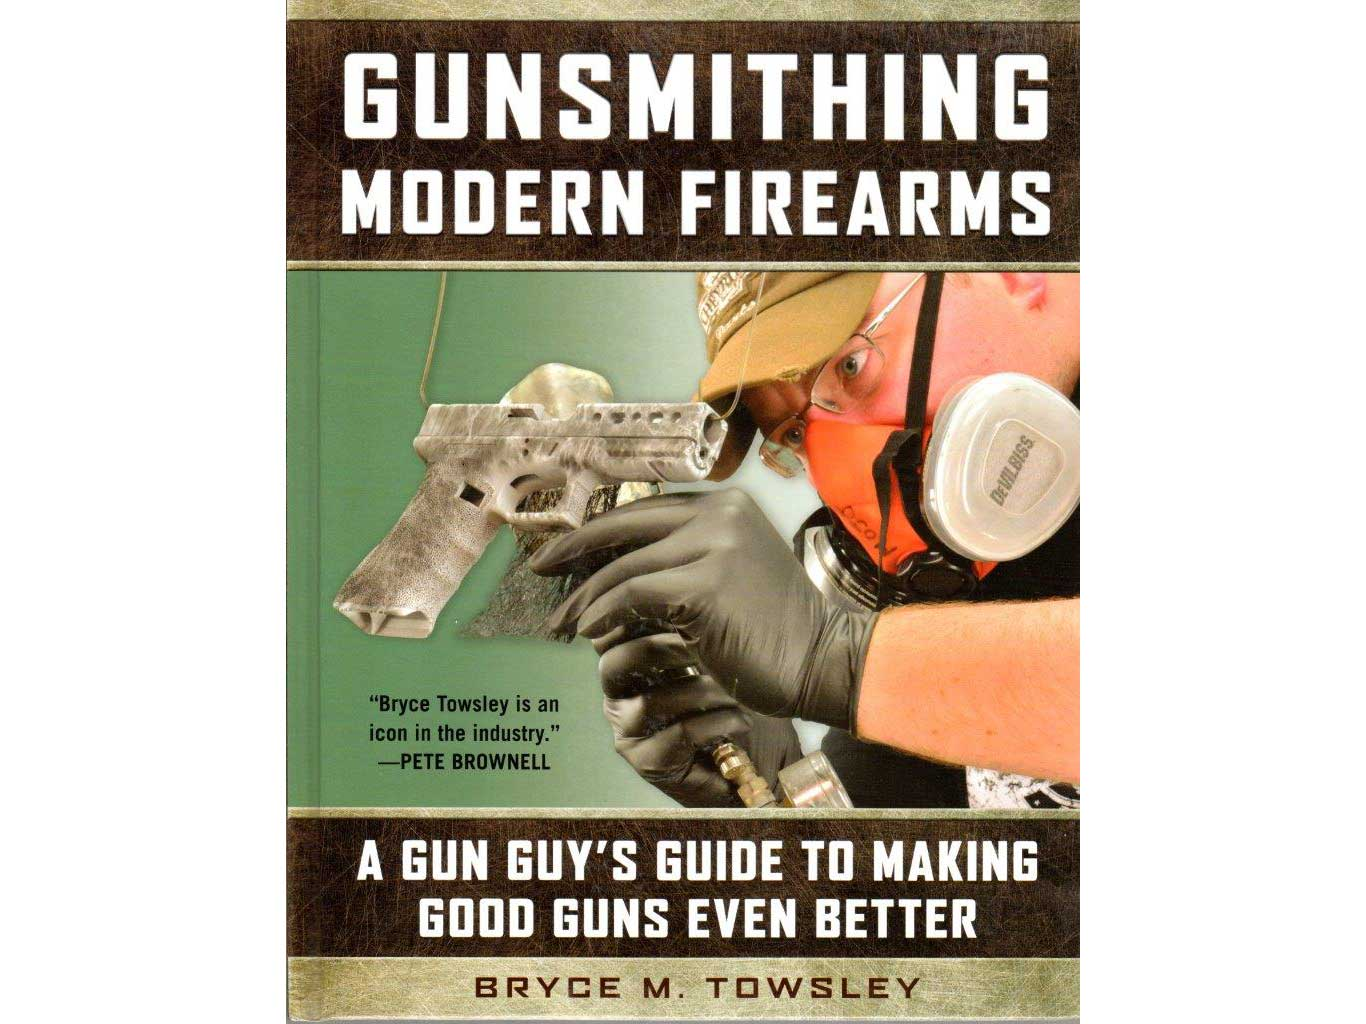 The book cover of Gunsmithing Modern Firearms.